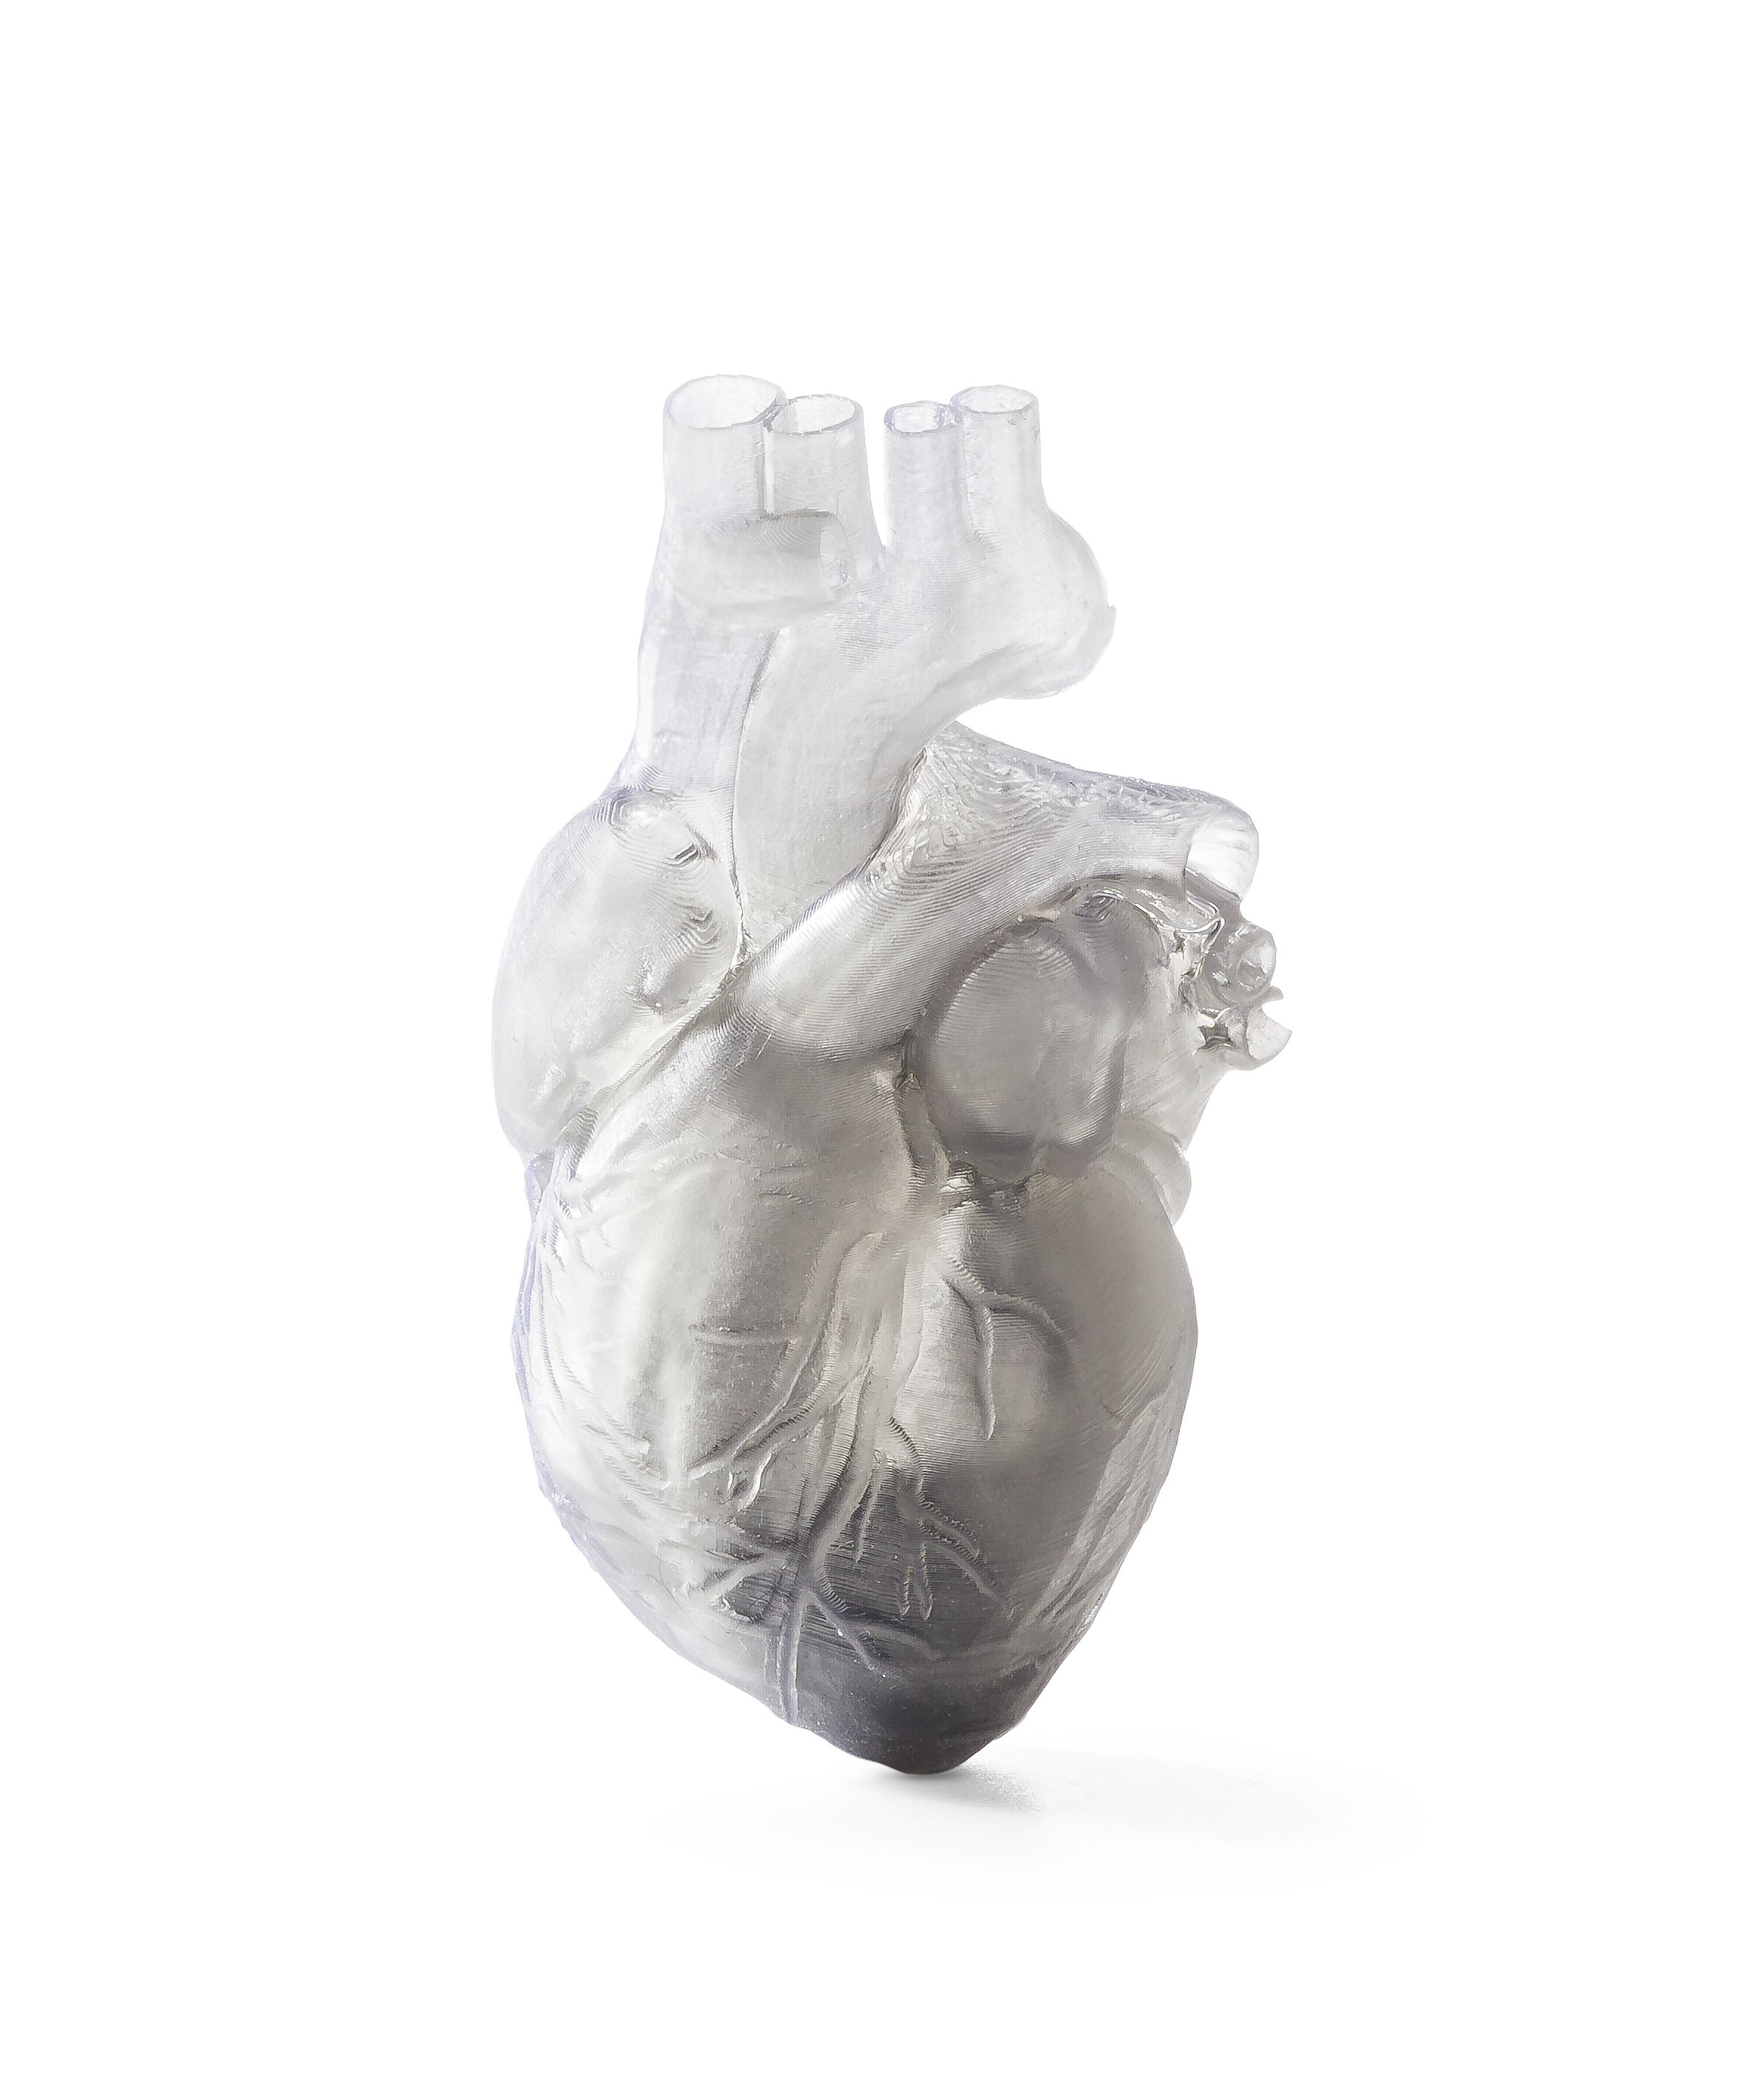 Heart printed on a Formlabs printer #science #technology #3dprinting